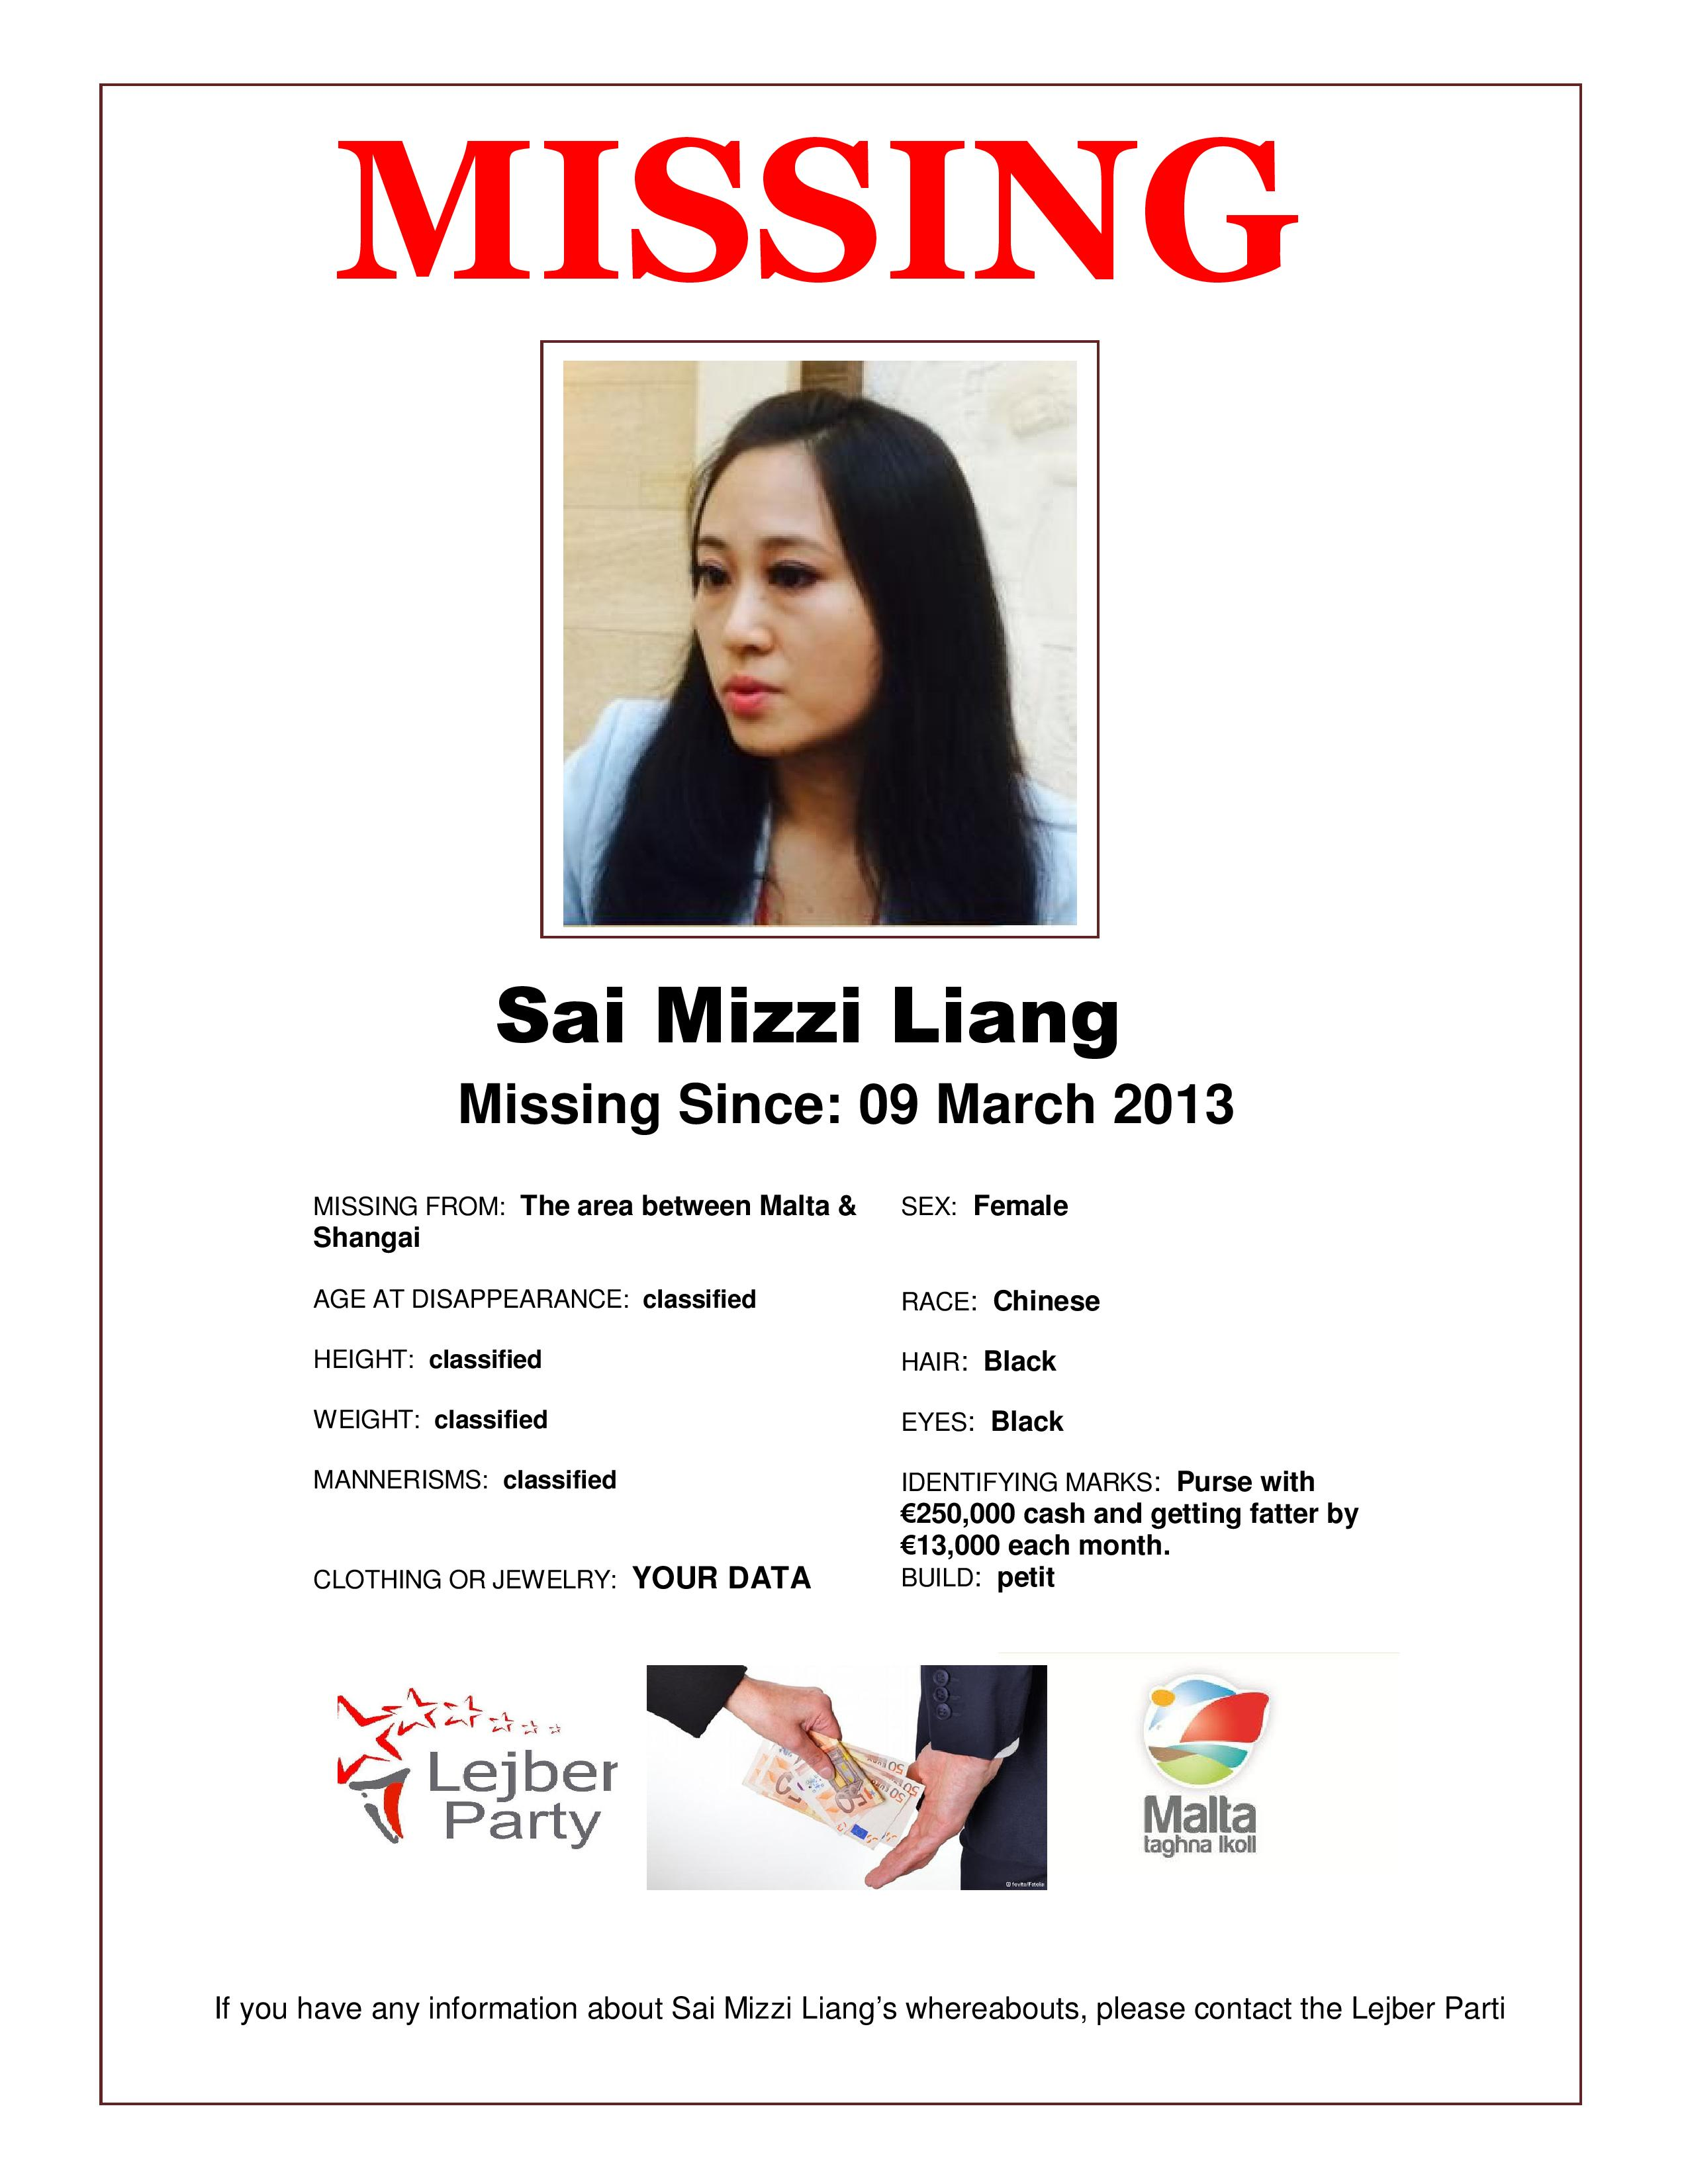 Search for Sai please help by sharing this Missing Person – Missing Person Poster